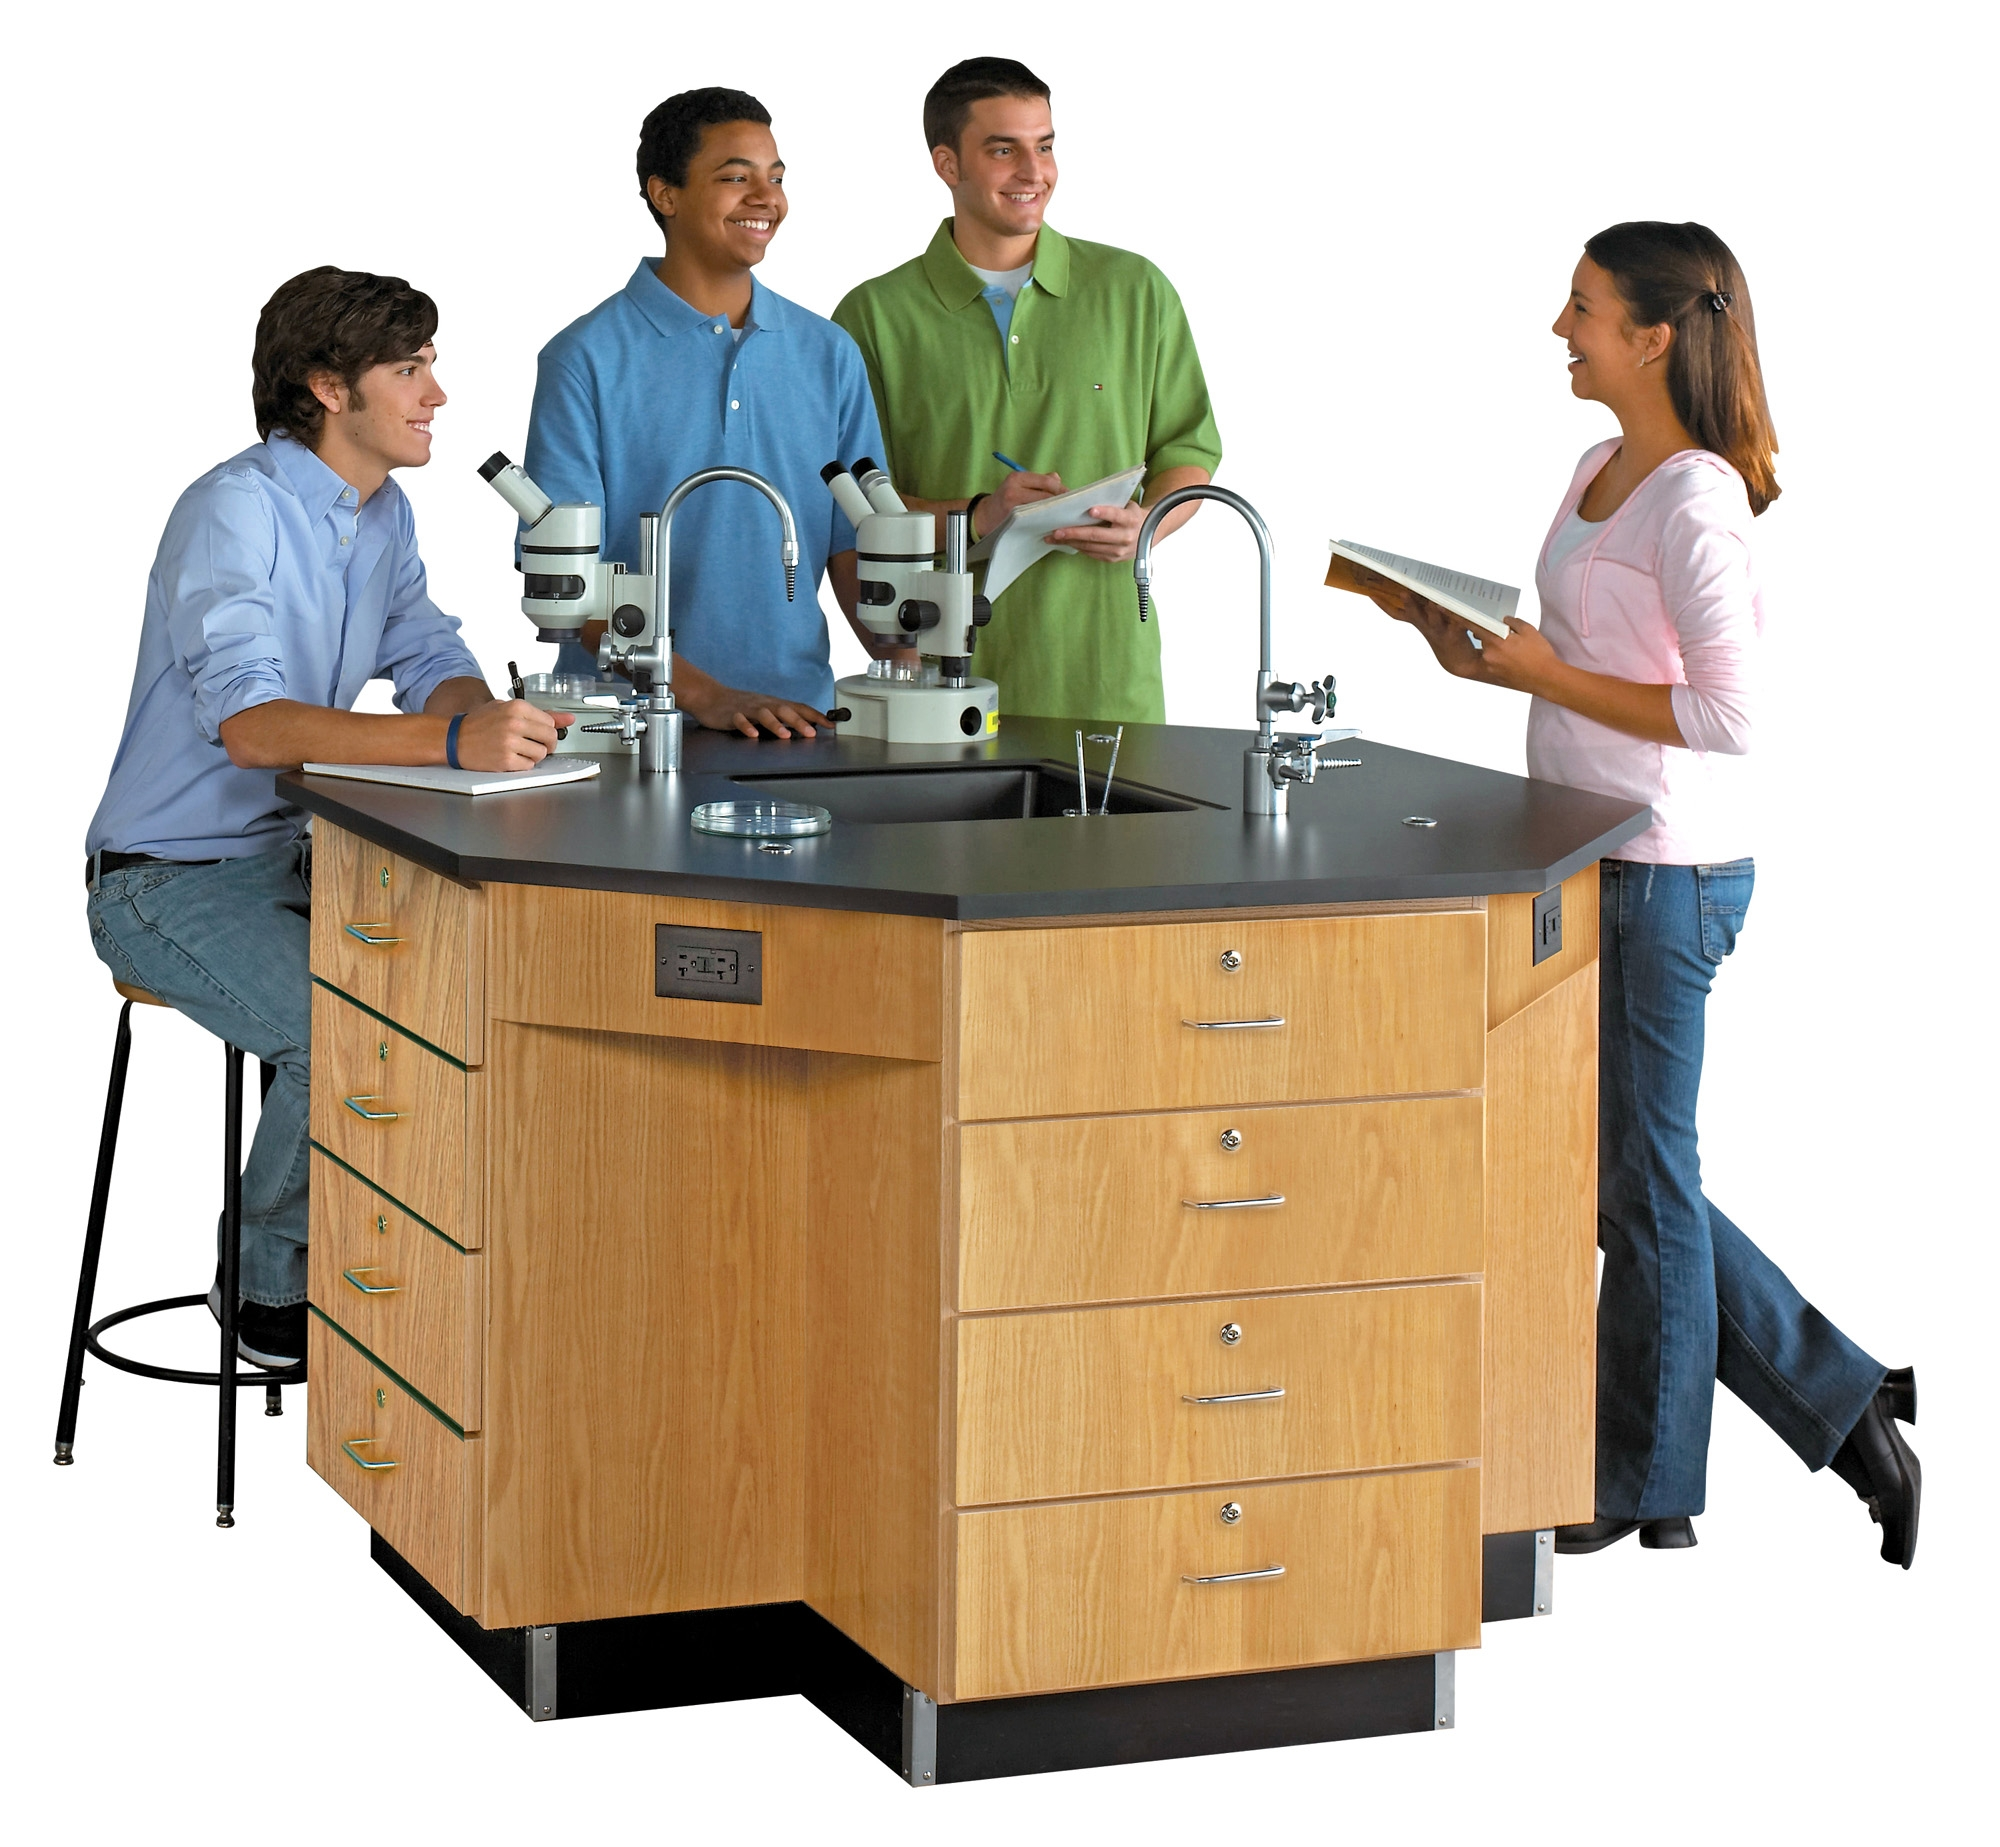 Diversified Woodcrafts Octagon Workstation with Drawer Base & Fixtures - Epoxy Top